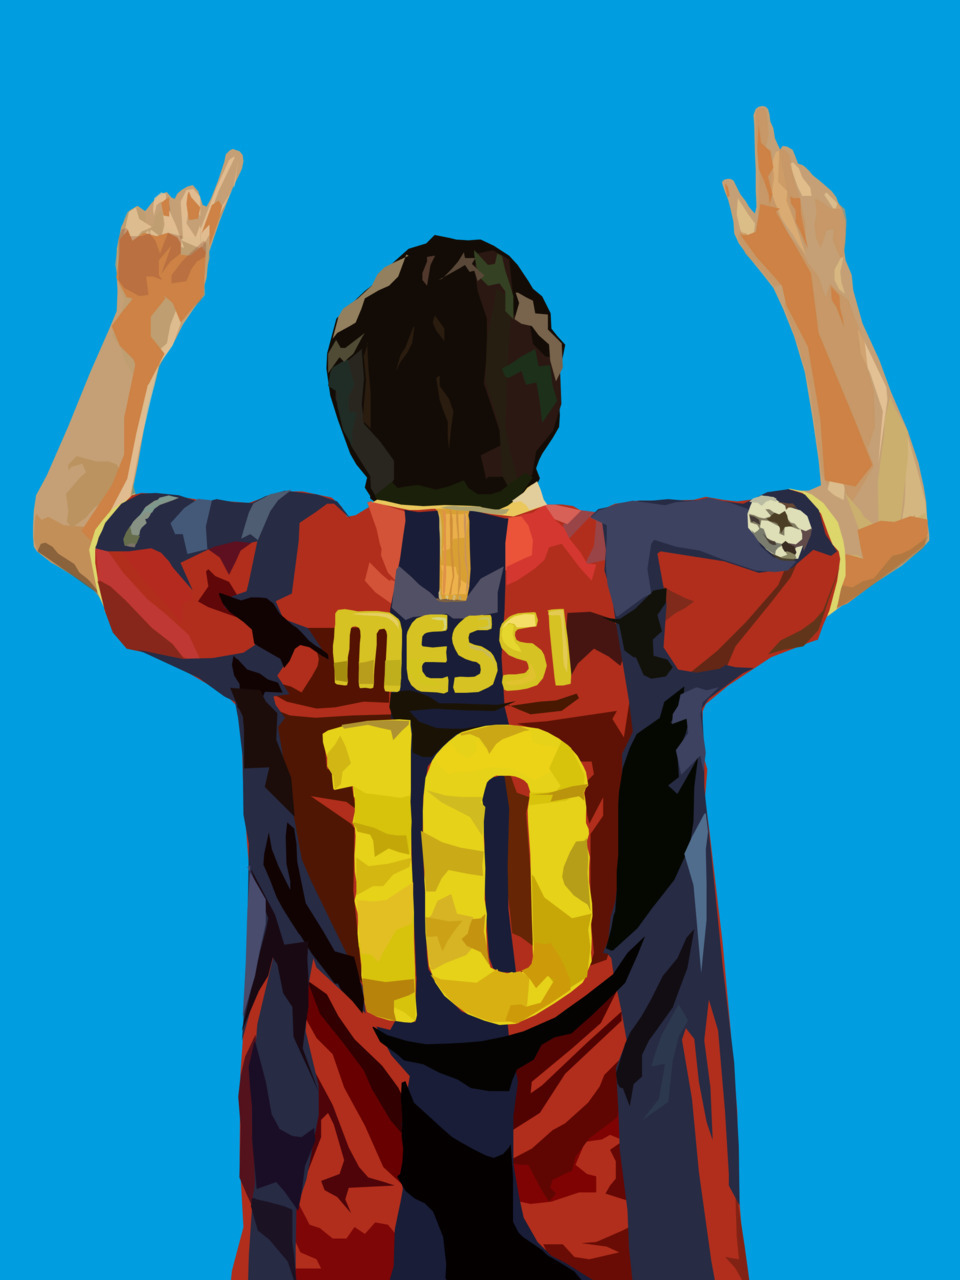 Messi in Vector